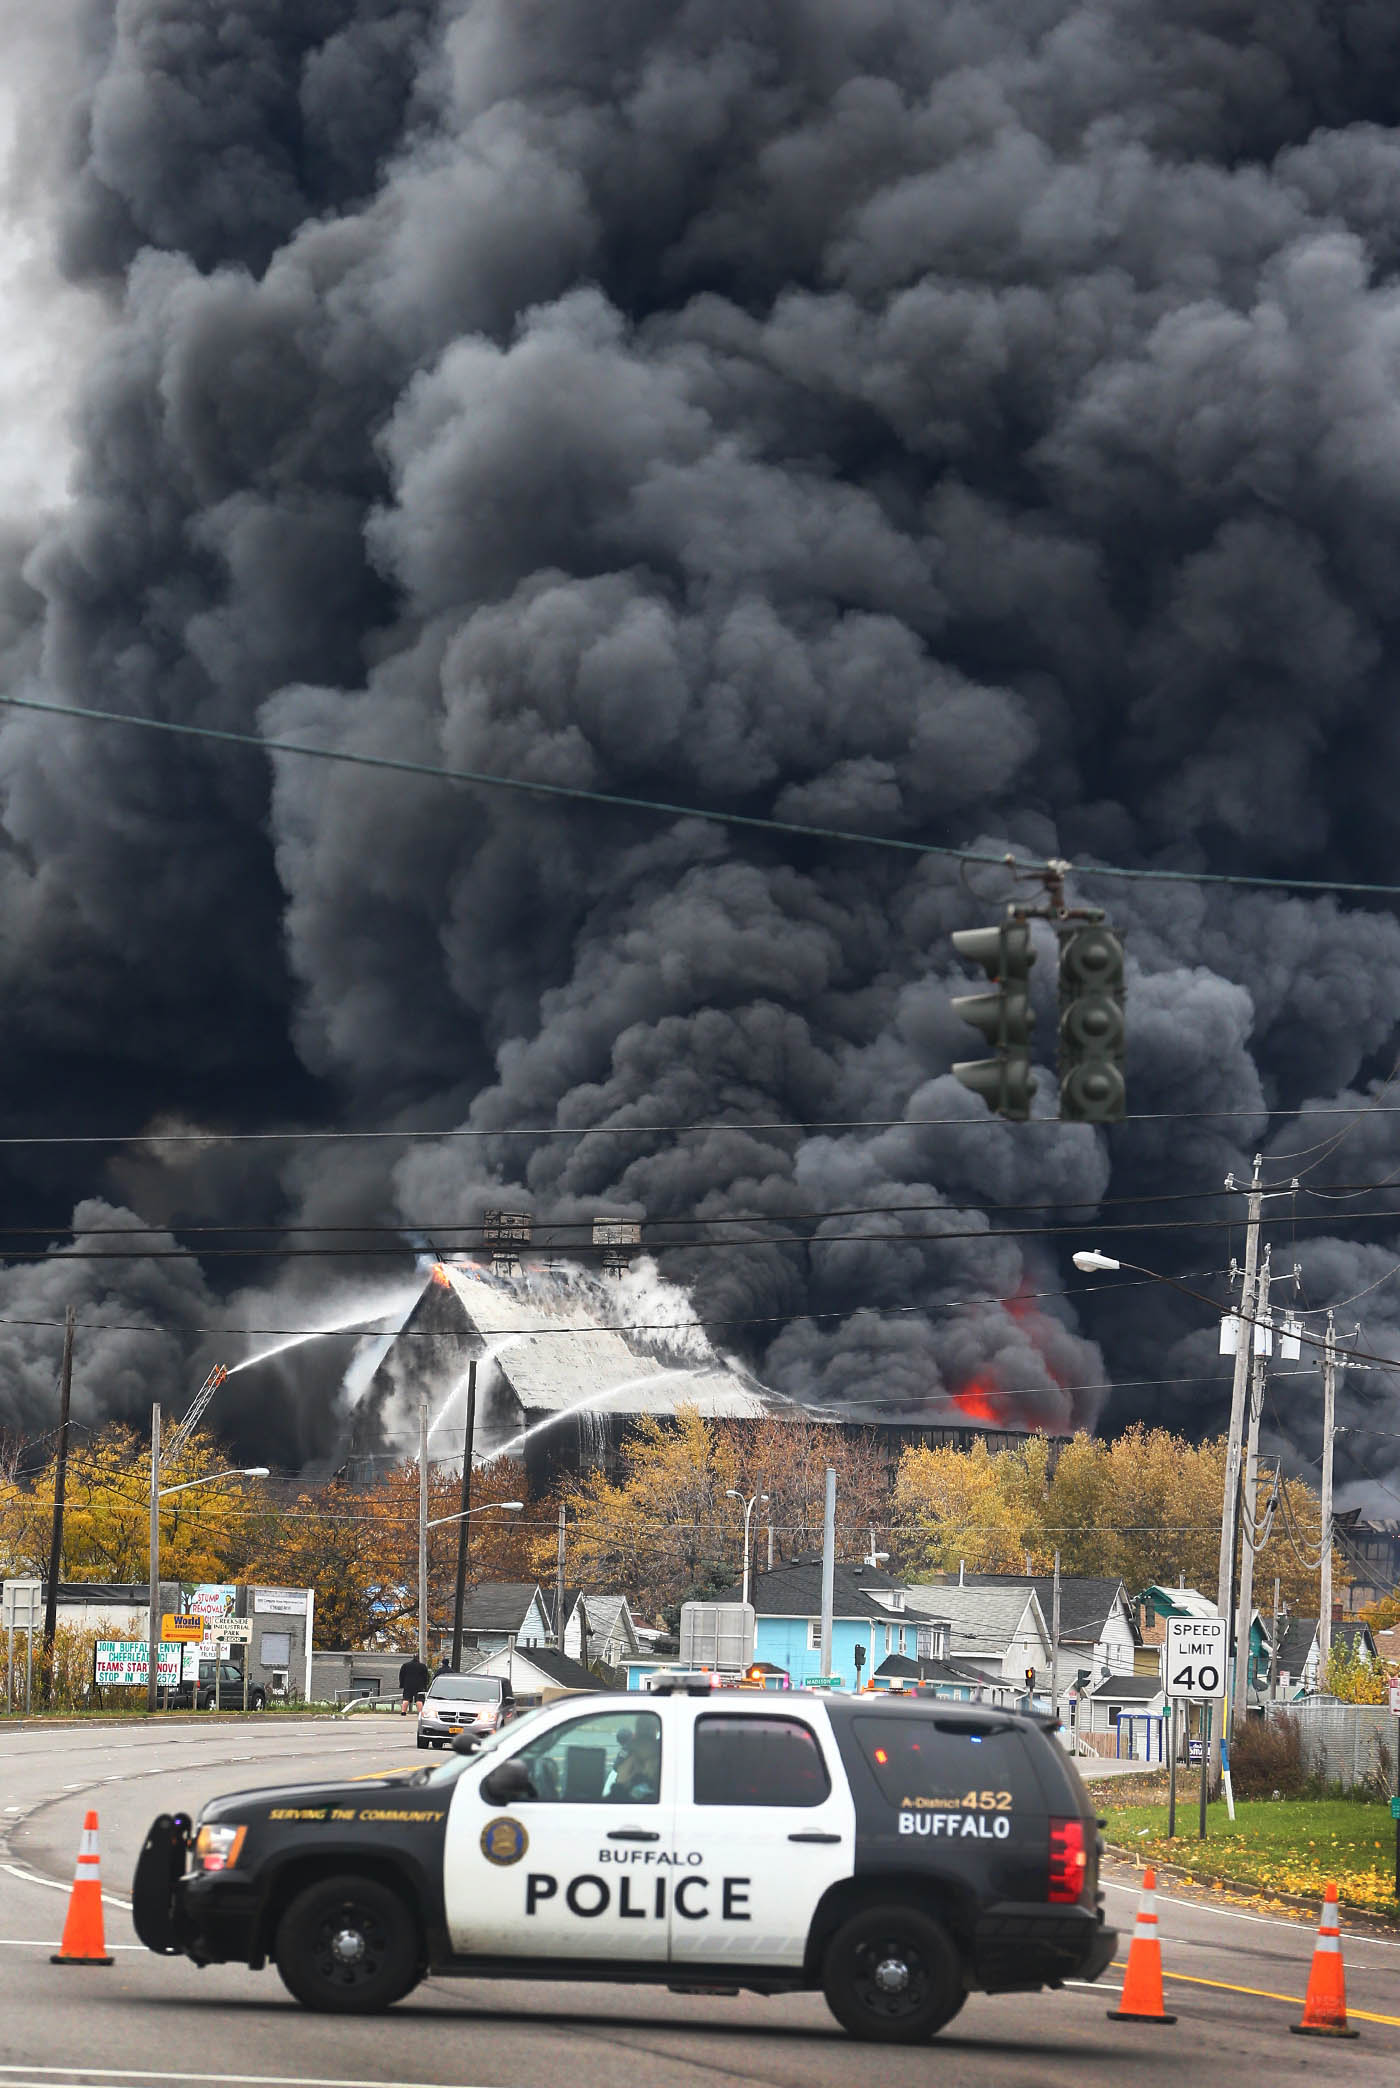 A Buffalo Police vehicle closes Route 5 as a fire rages at former Bethlehem Steel storage along Route 5, Lackawanna, N.Y., on Wednesday November 9, 2016. (John Hickey/Buffalo News)